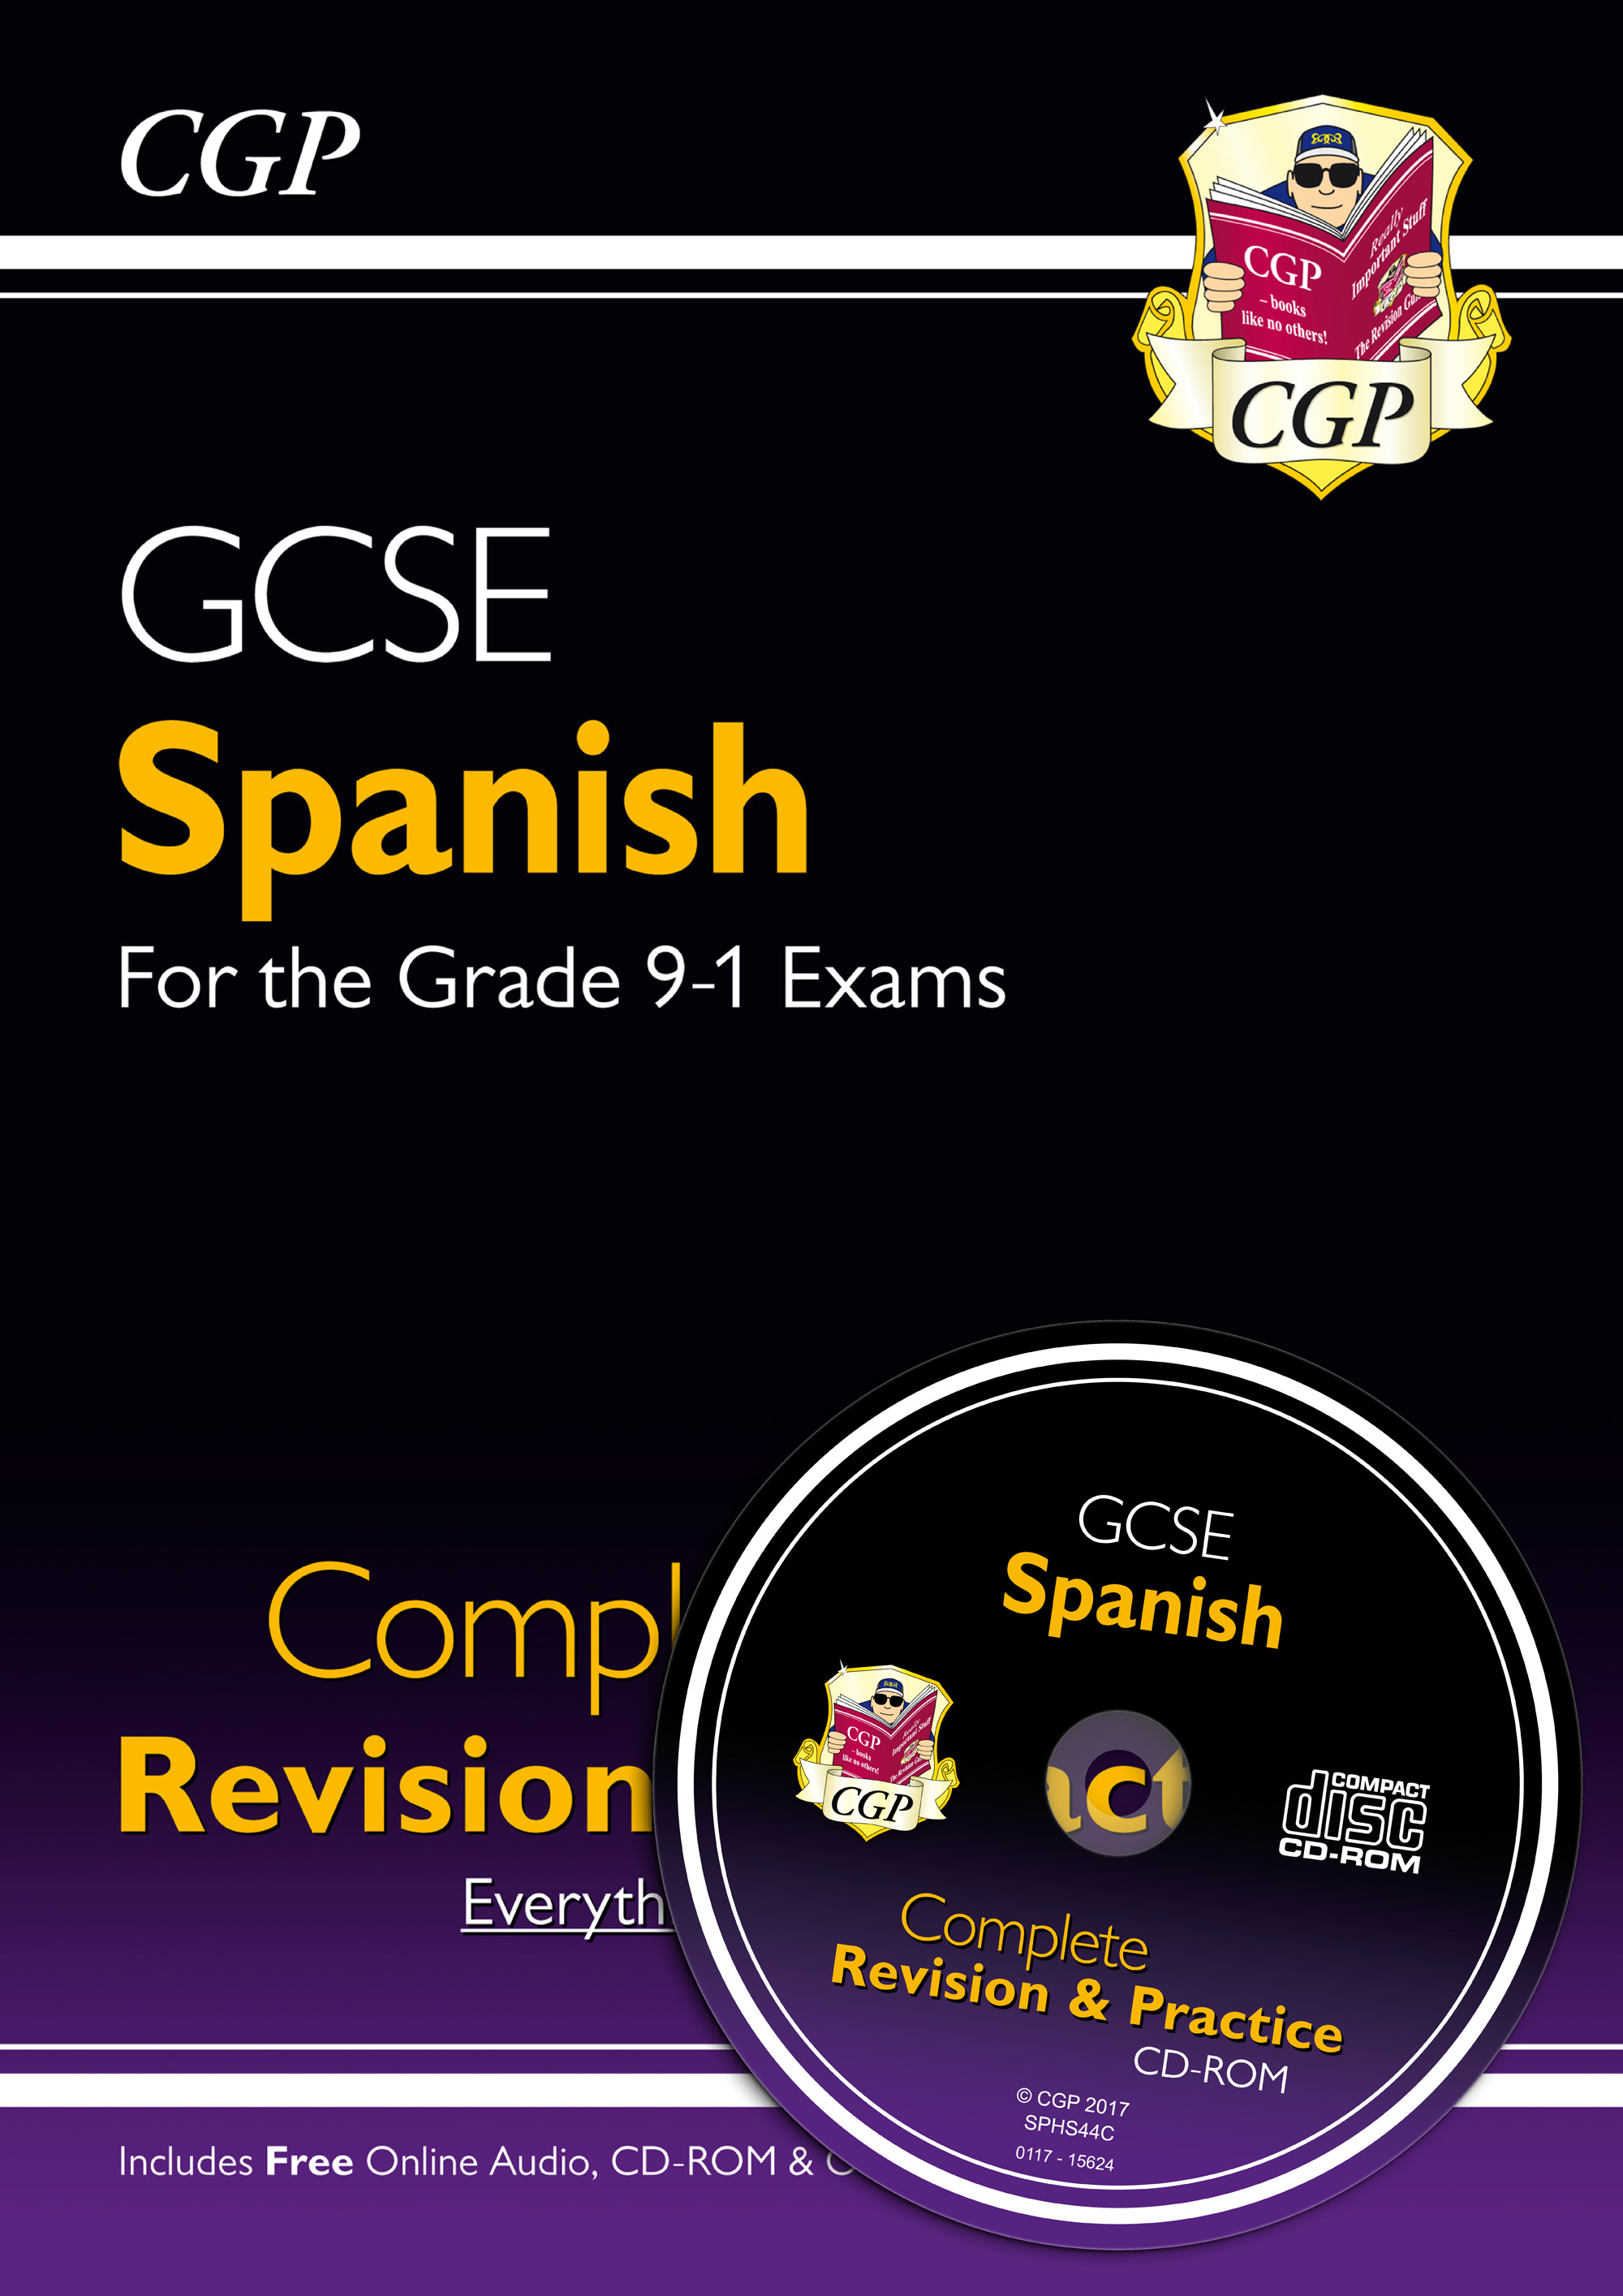 SPHS44 - New GCSE Spanish Complete Revision & Practice (with CD & Online Edition) - Grade 9-1 Course